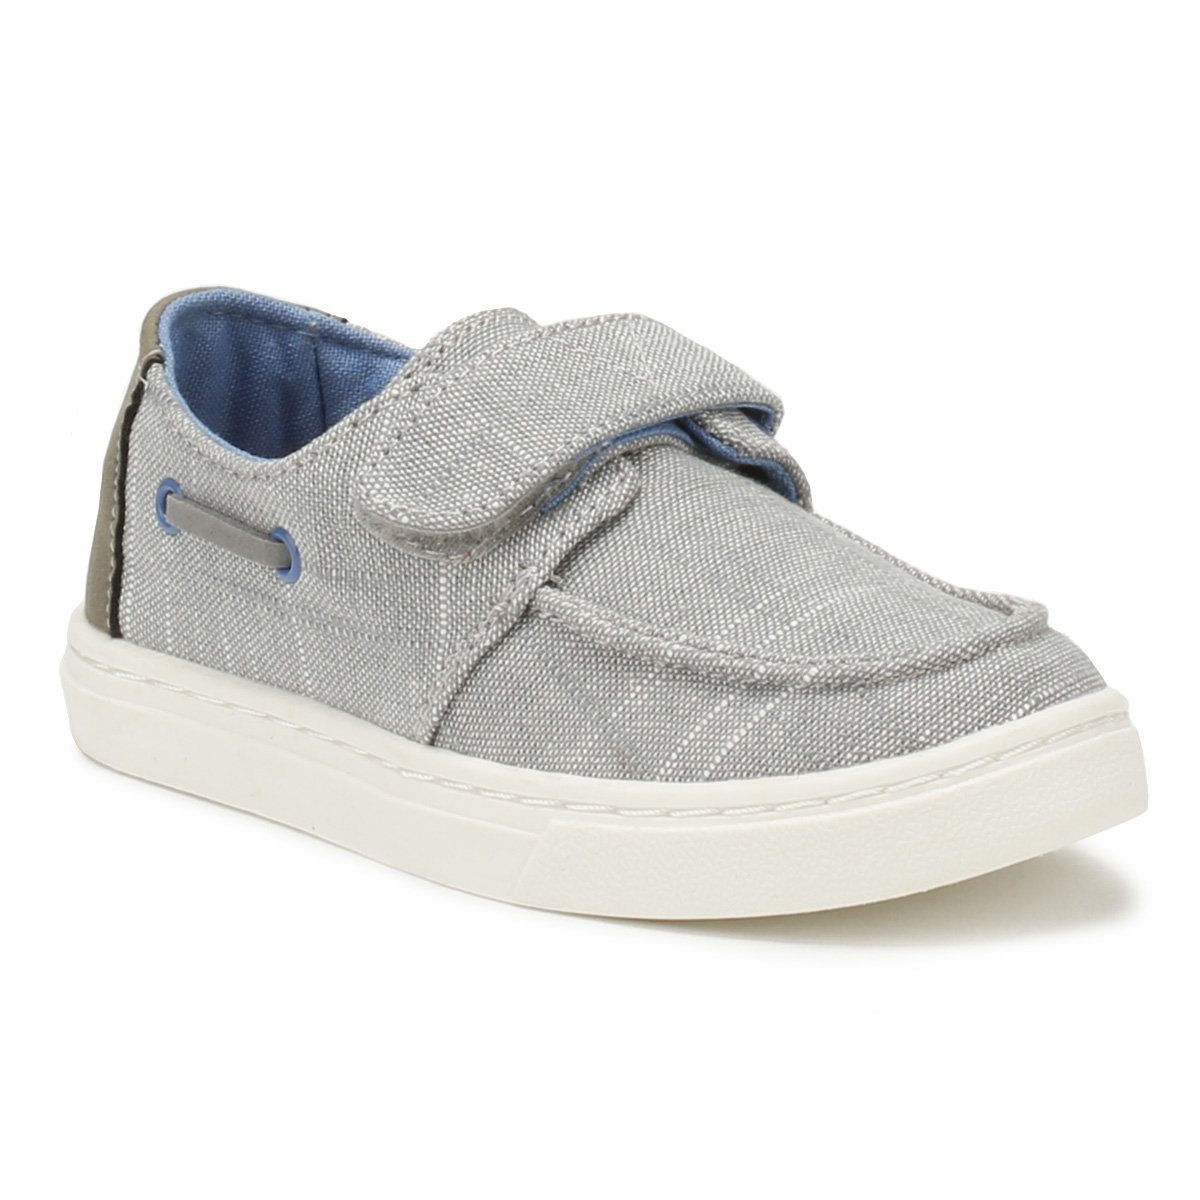 95ff49cfd54 TOMS Culver Slip On Shoes  Amazon.co.uk  Shoes   Bags